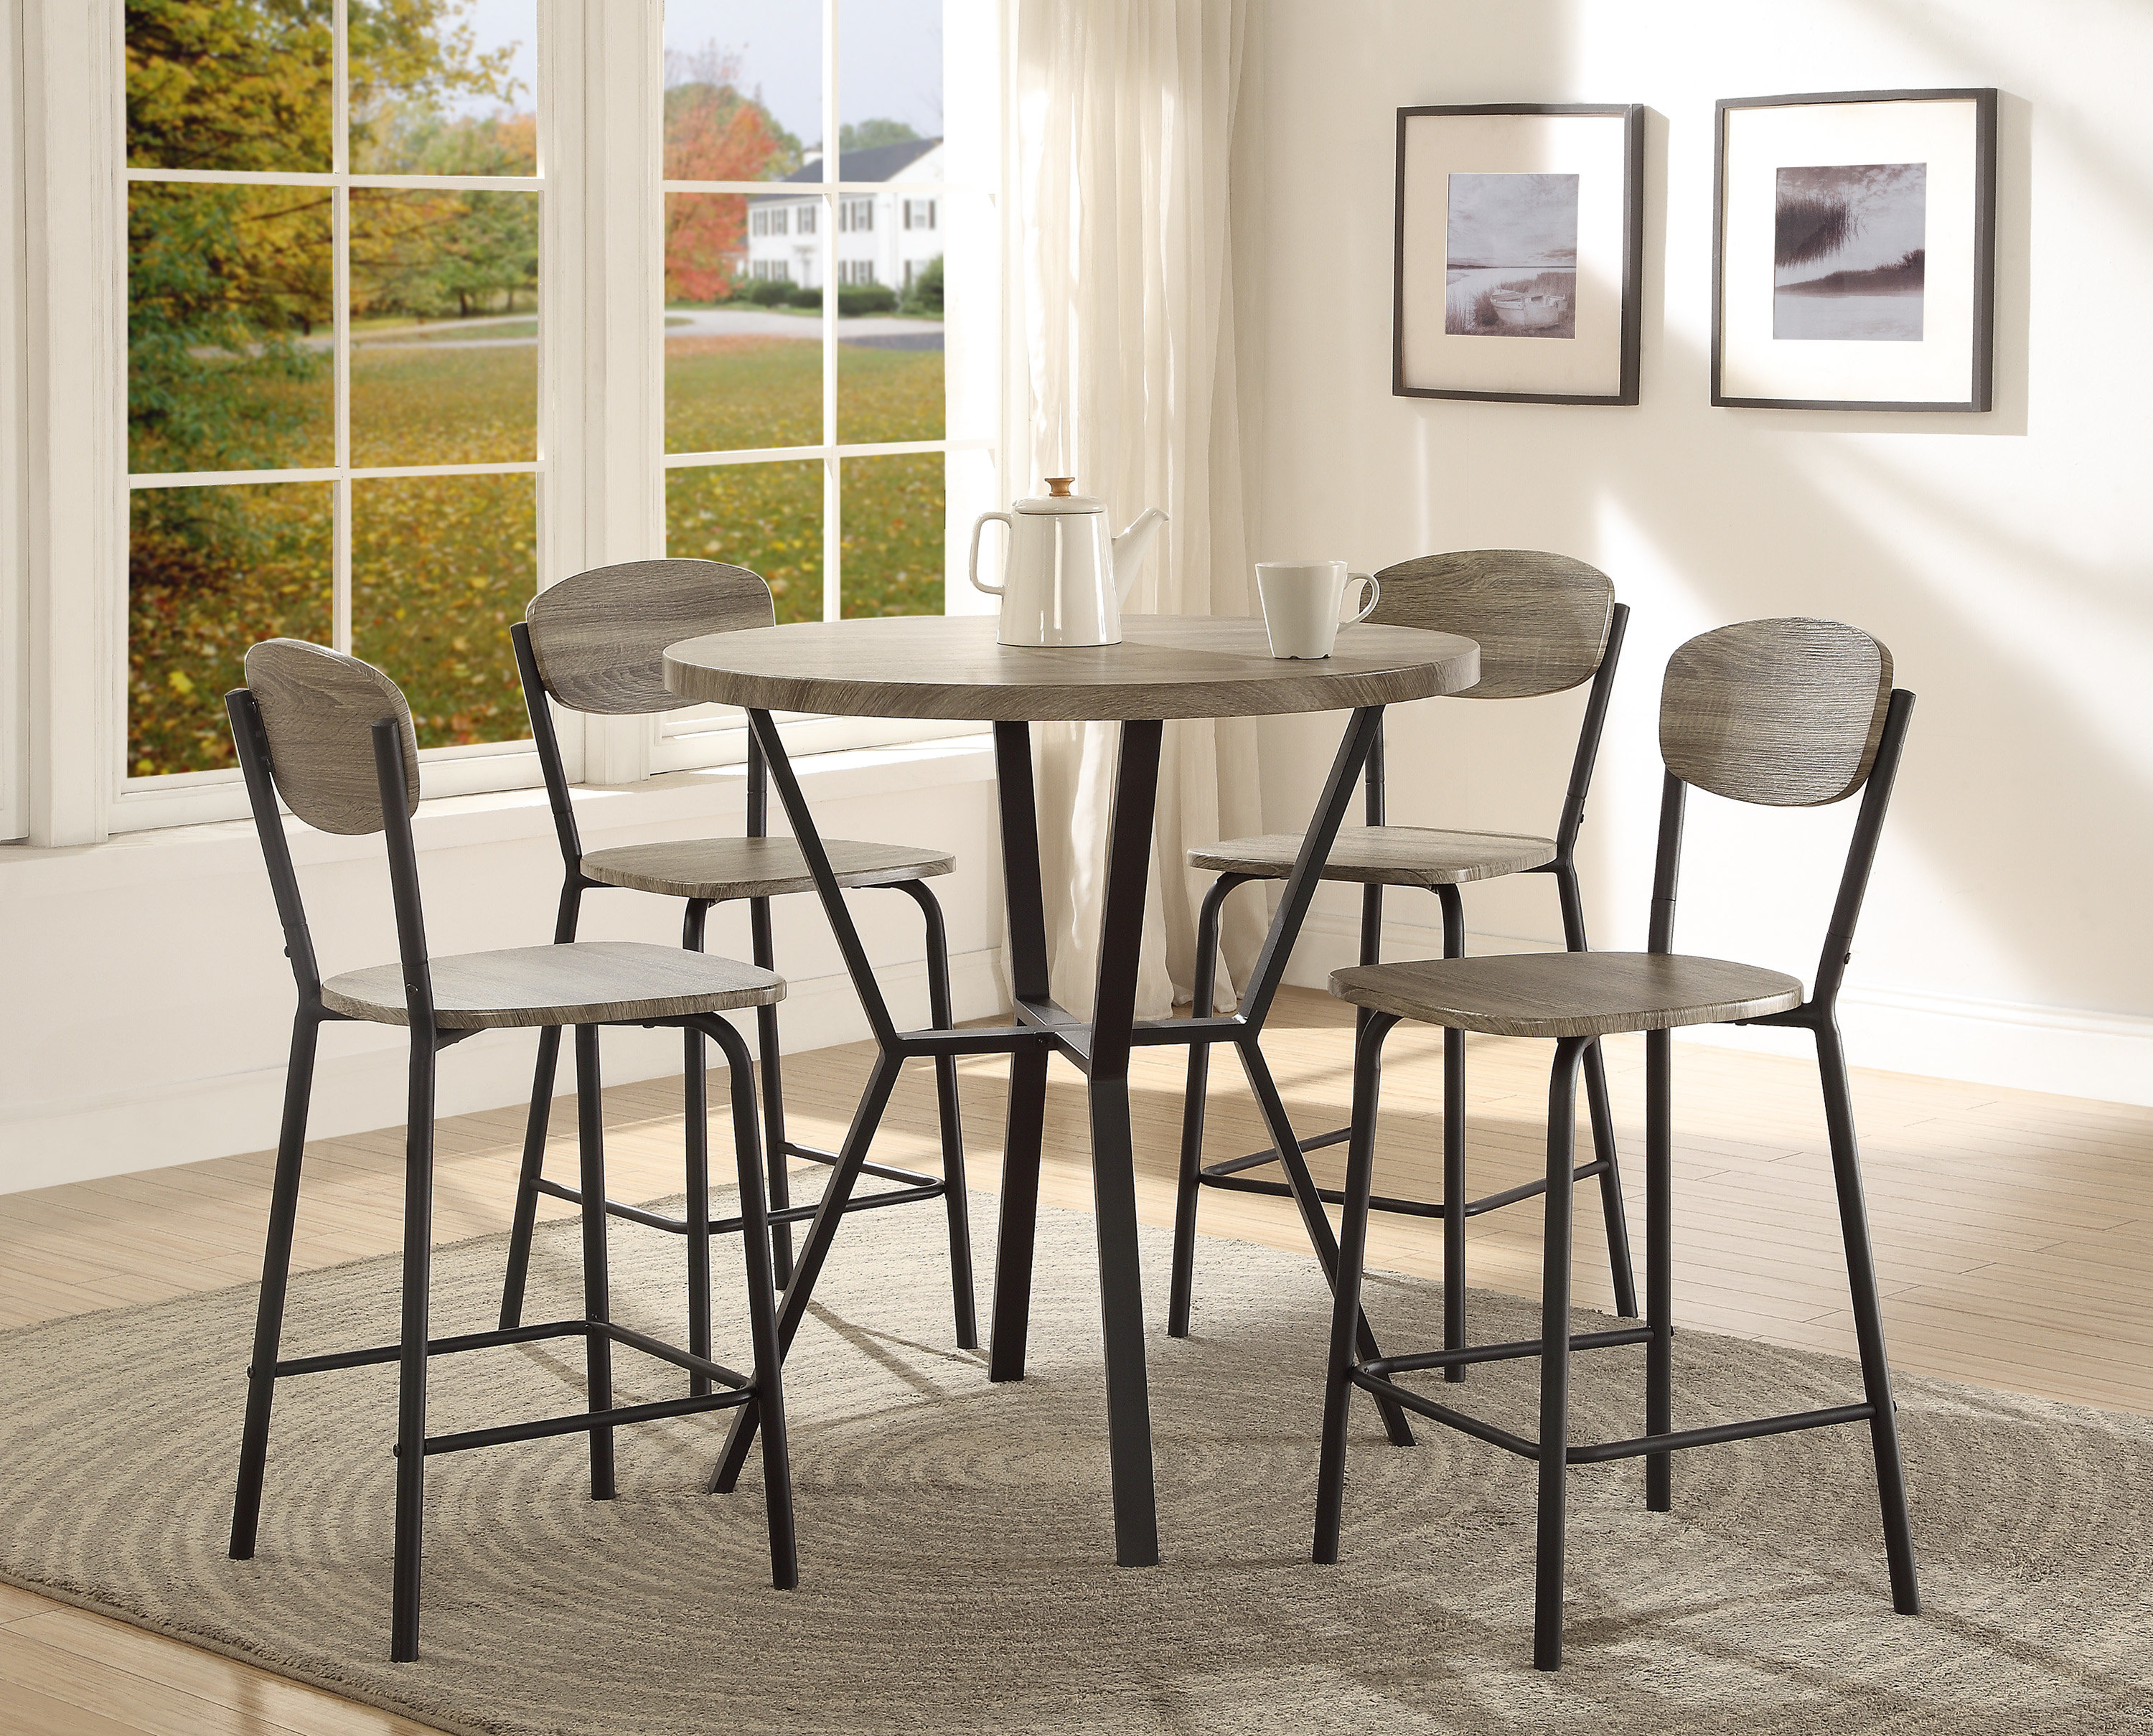 Felicia 5 Piece Counter Height Dining Set Throughout Favorite Middleport 5 Piece Dining Sets (View 6 of 20)